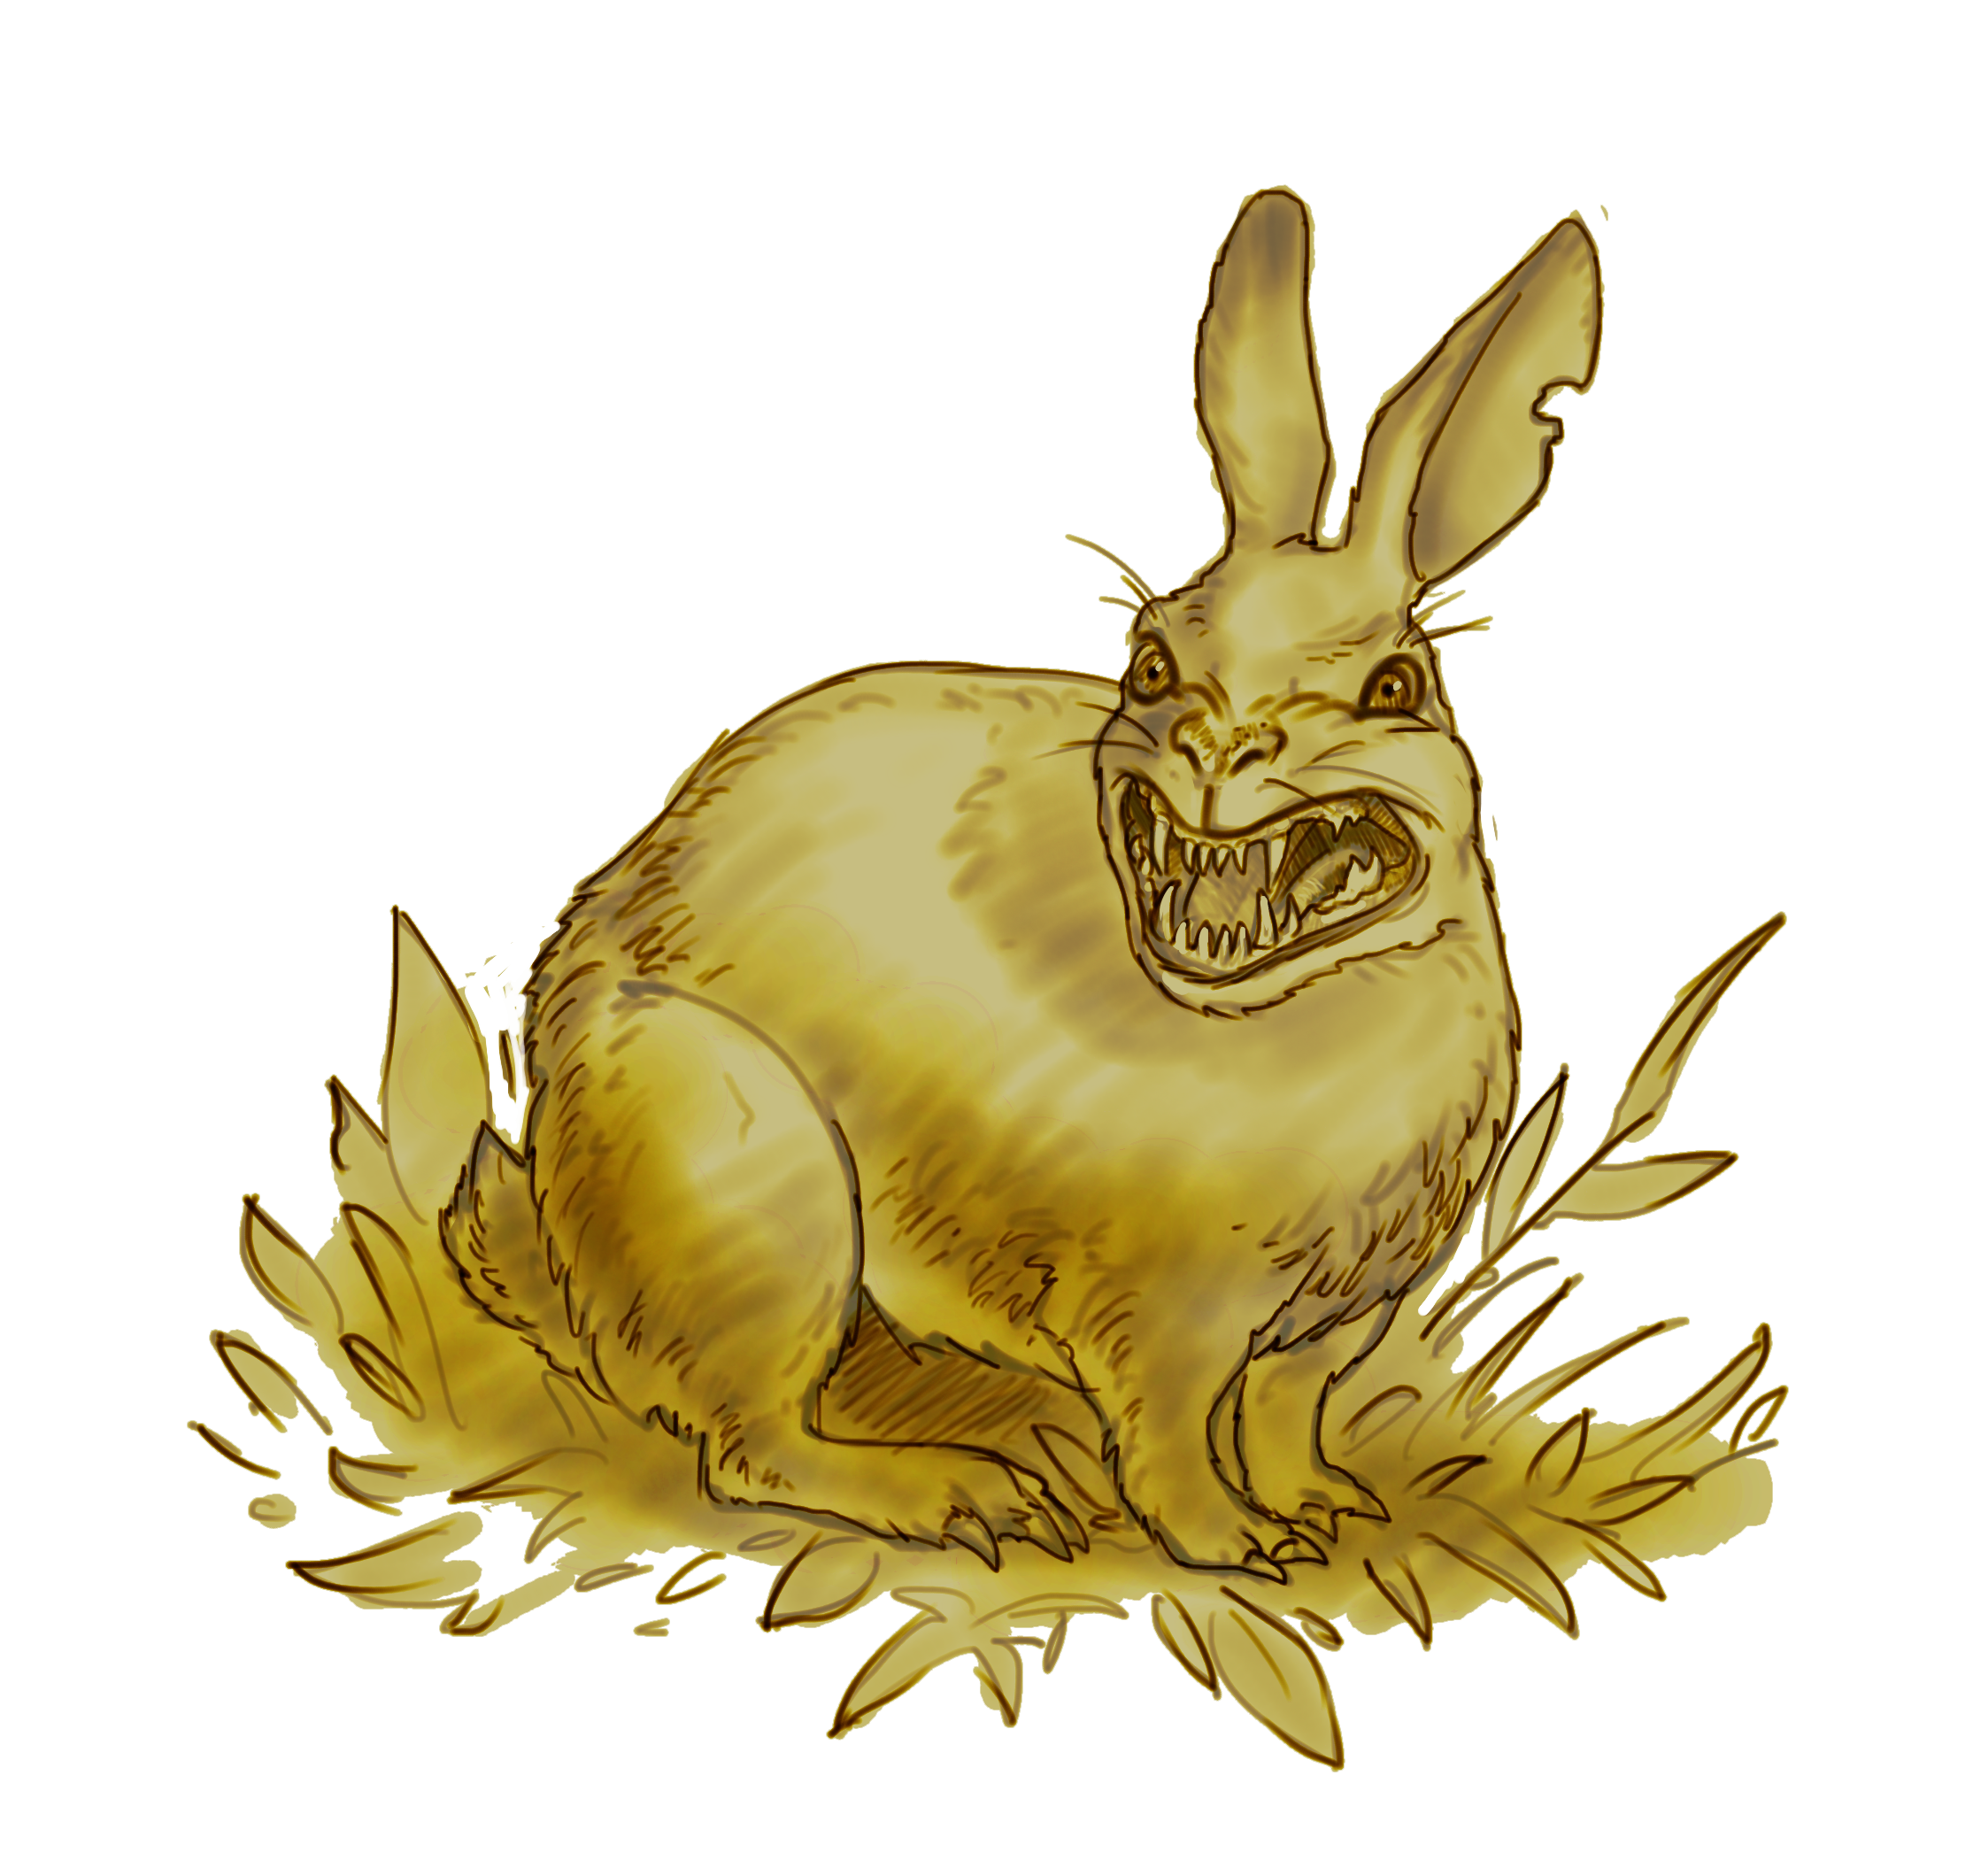 Hares drawing sleeping. Shades of vengeance if